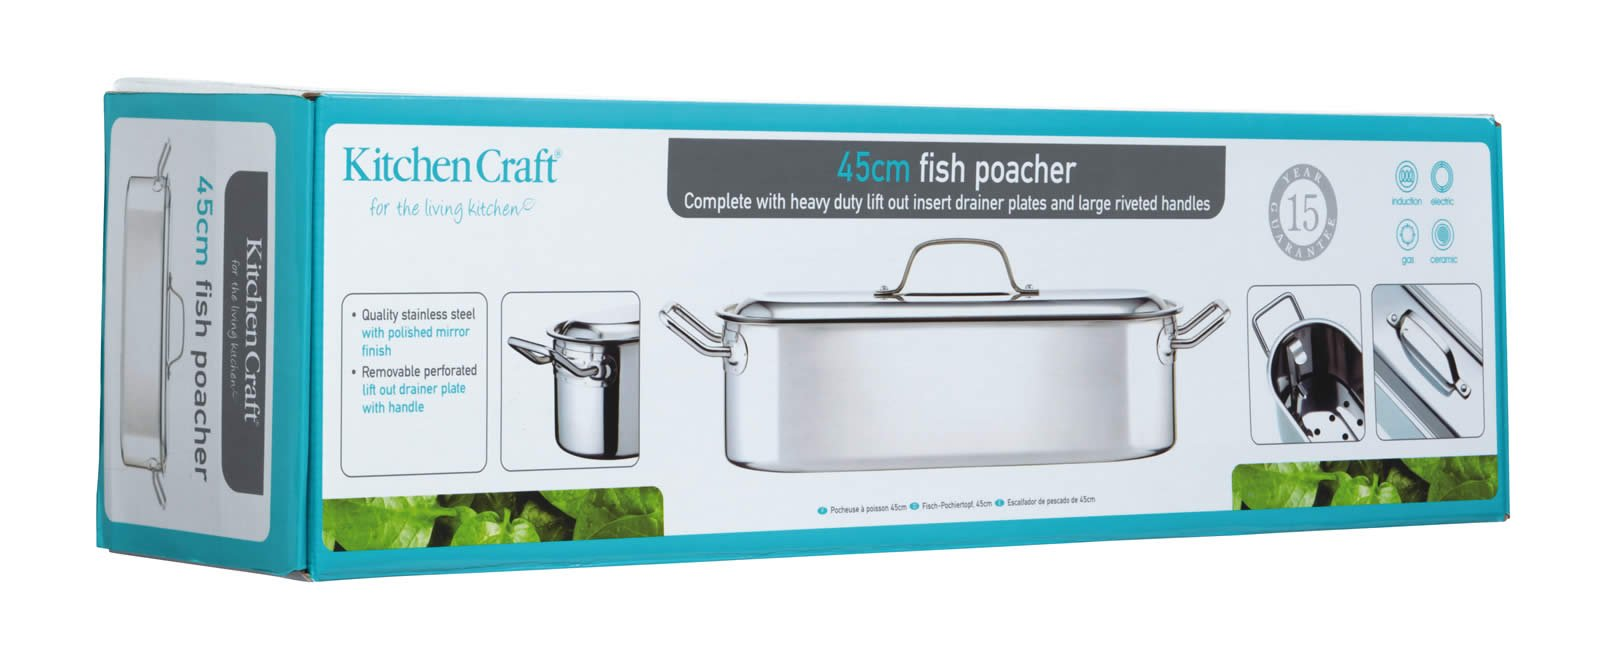 Kitchencraft Induction-safe Stainless Steel Fish Kettle, 45.5 x 15.5 x 10cm by Kitchen Craft (Image #1)